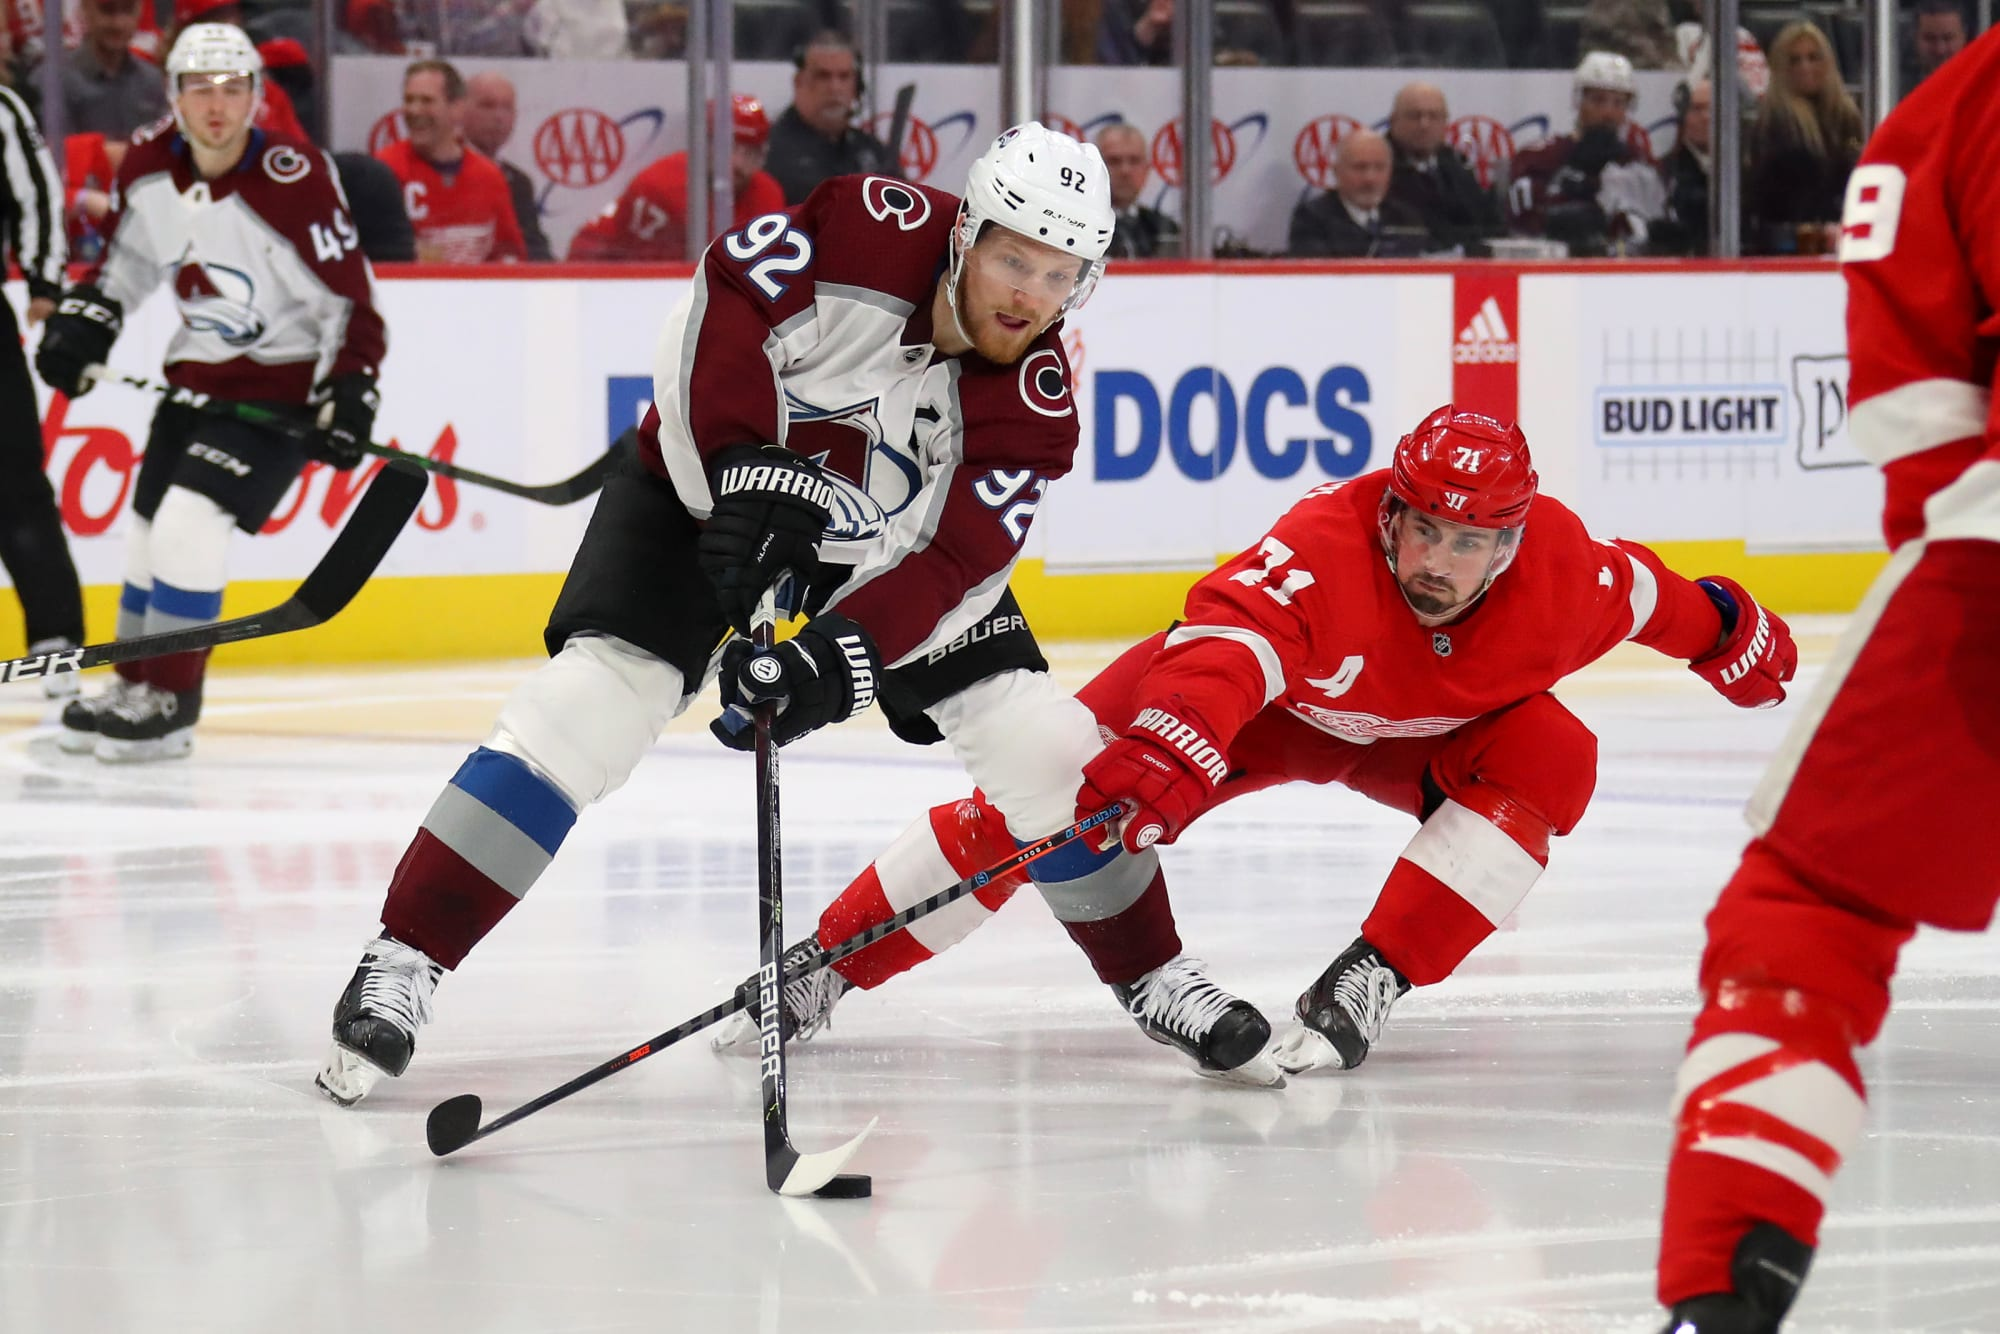 Detroit Red Wings: Which free agents might Yzerman target?